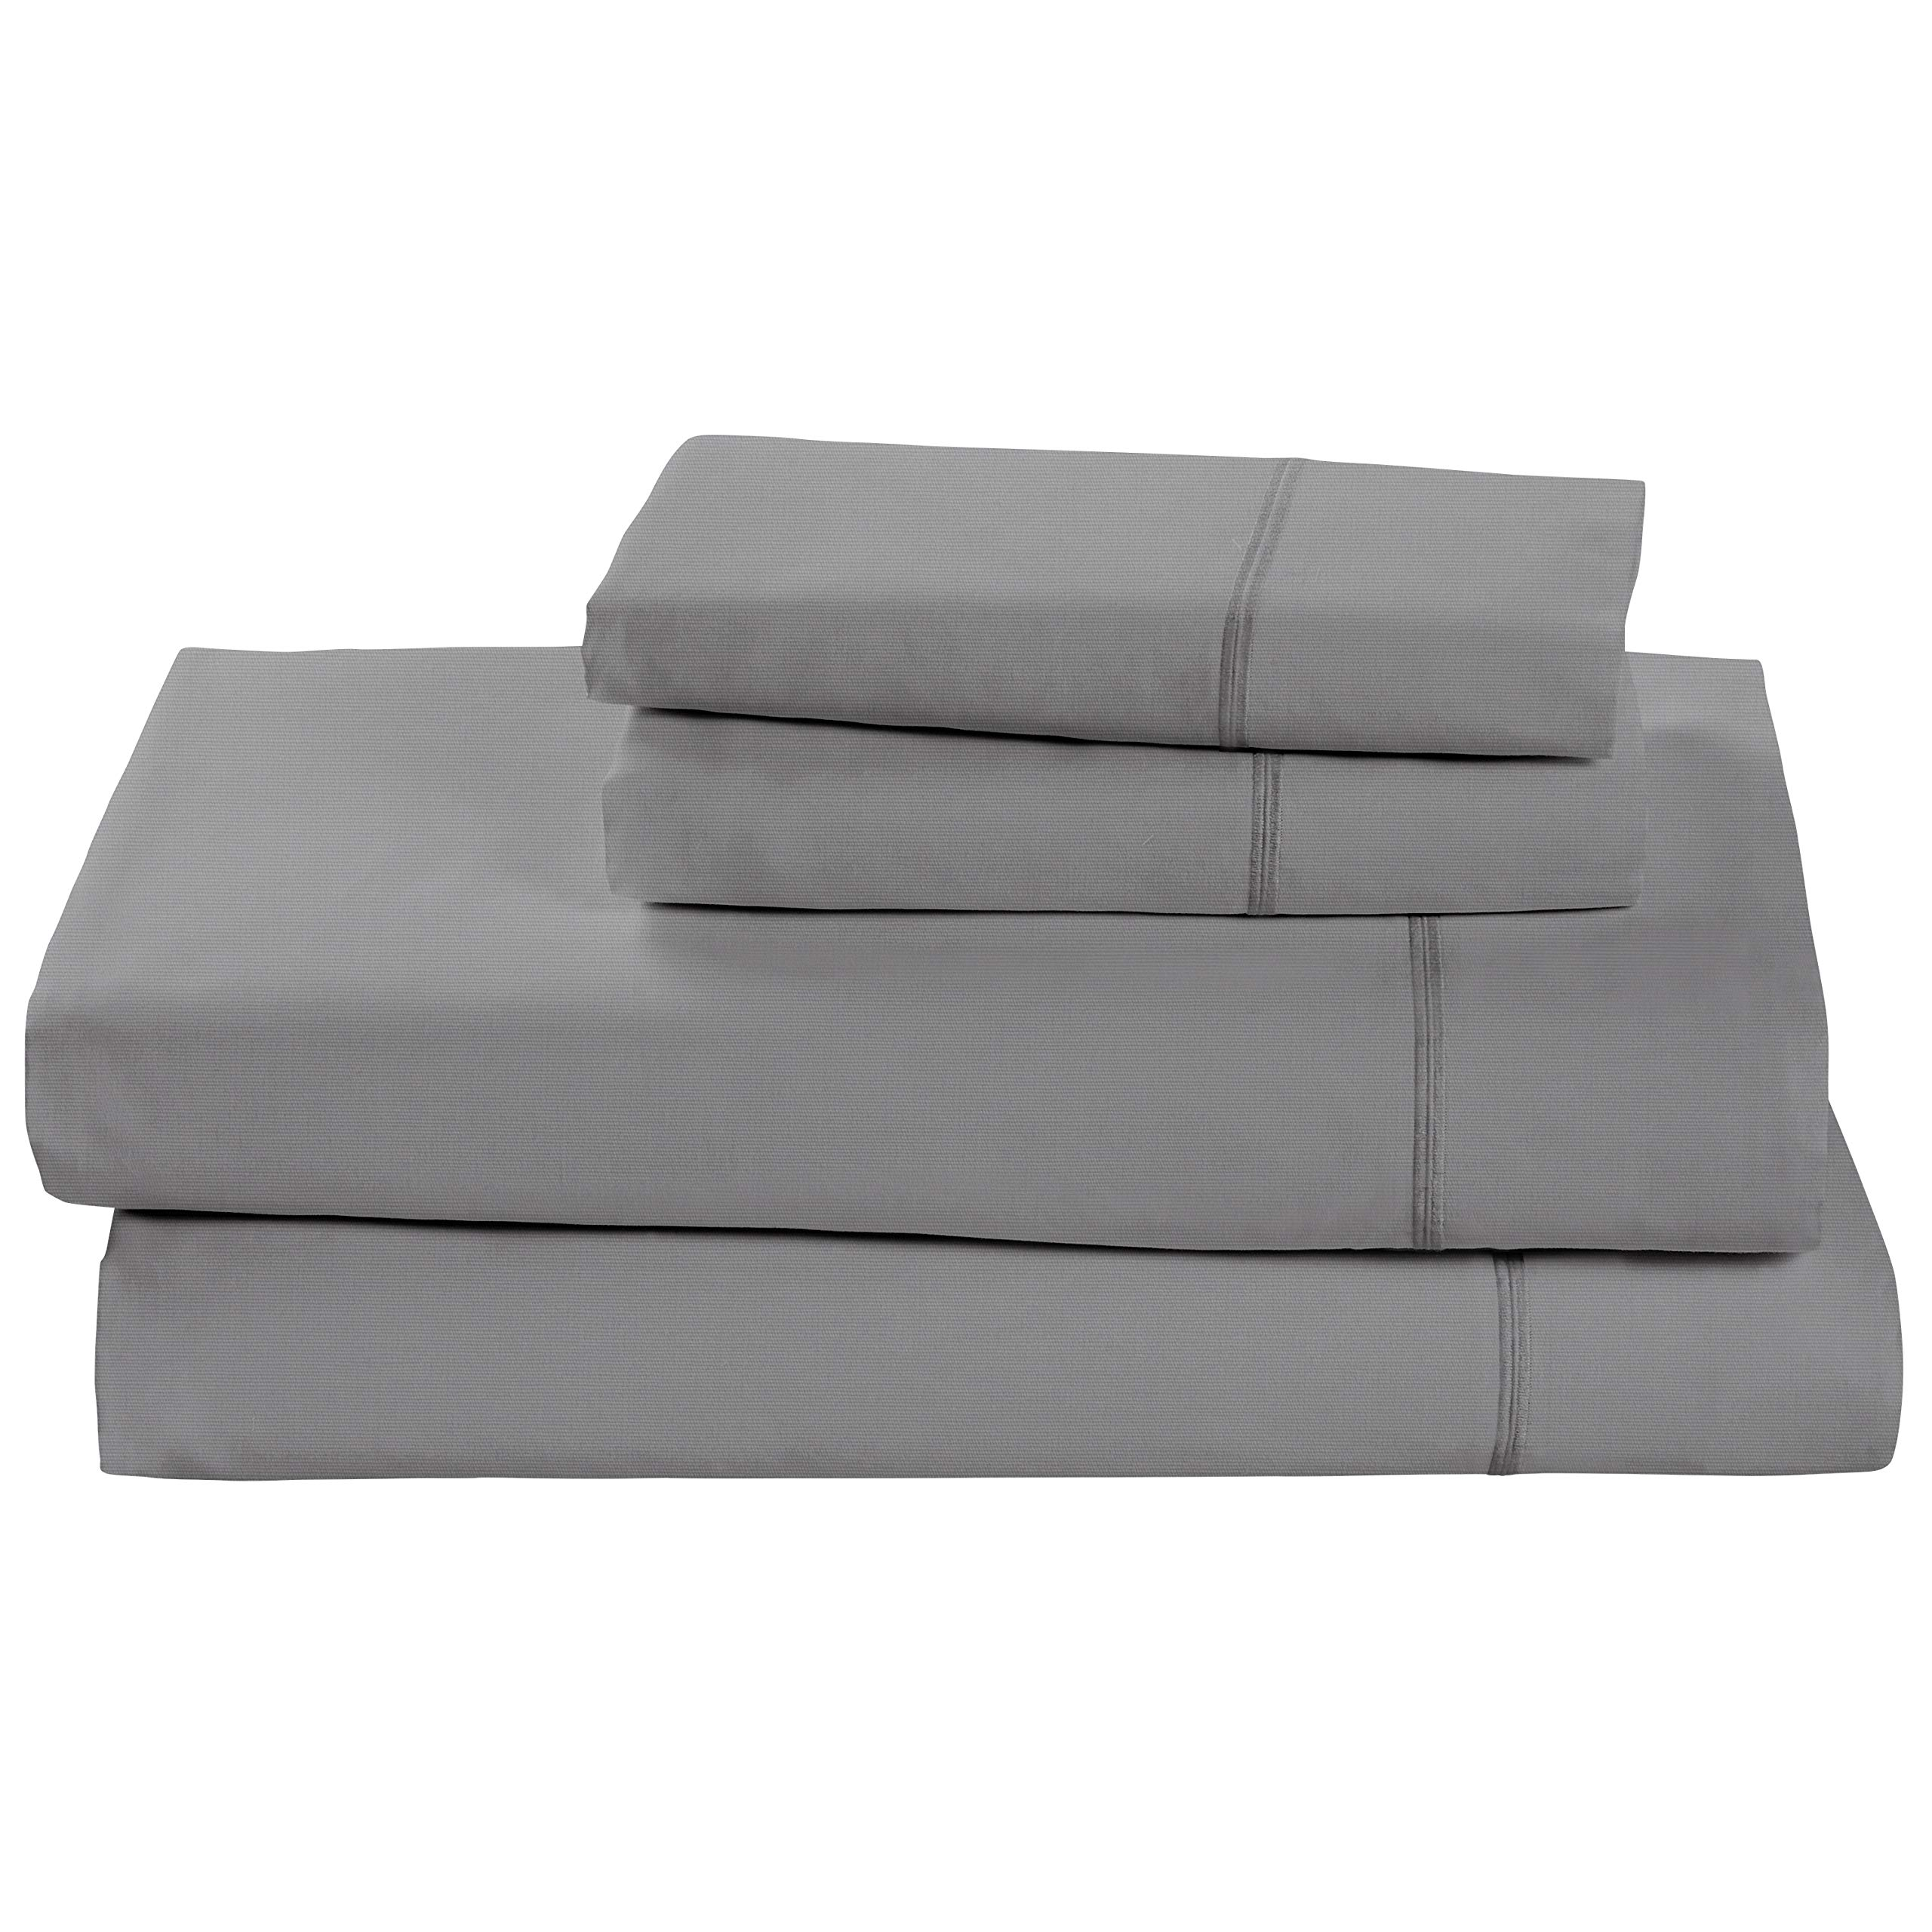 Rivet Soft 100% Percale Cotton Sheet Set, Easy Care, Full, Pewter